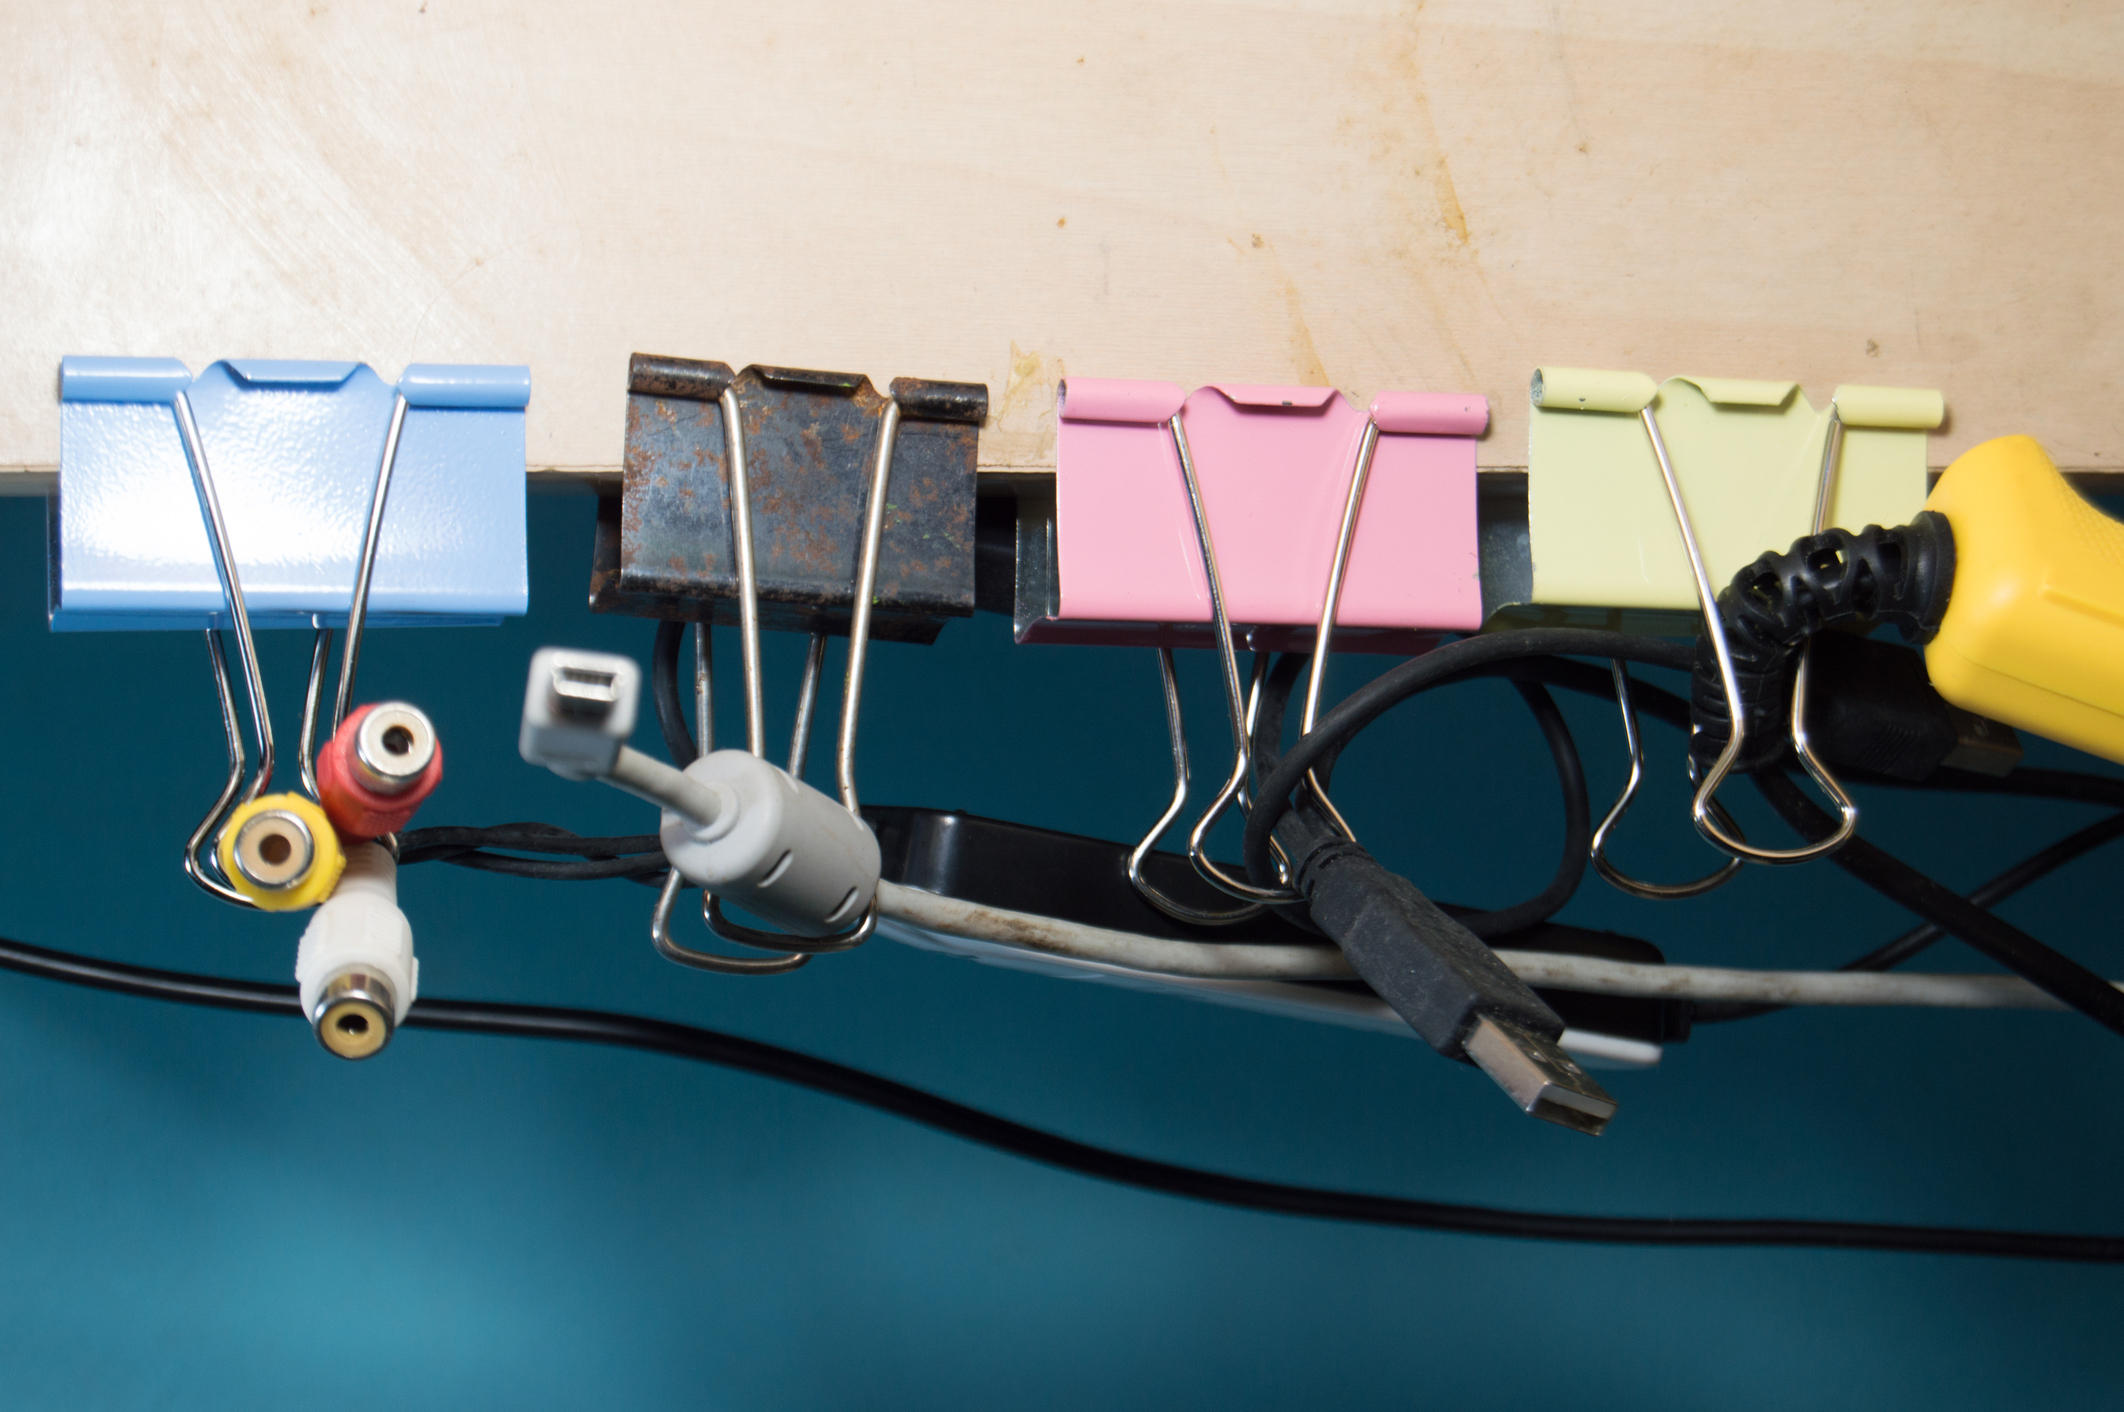 Paper clips to hold cables